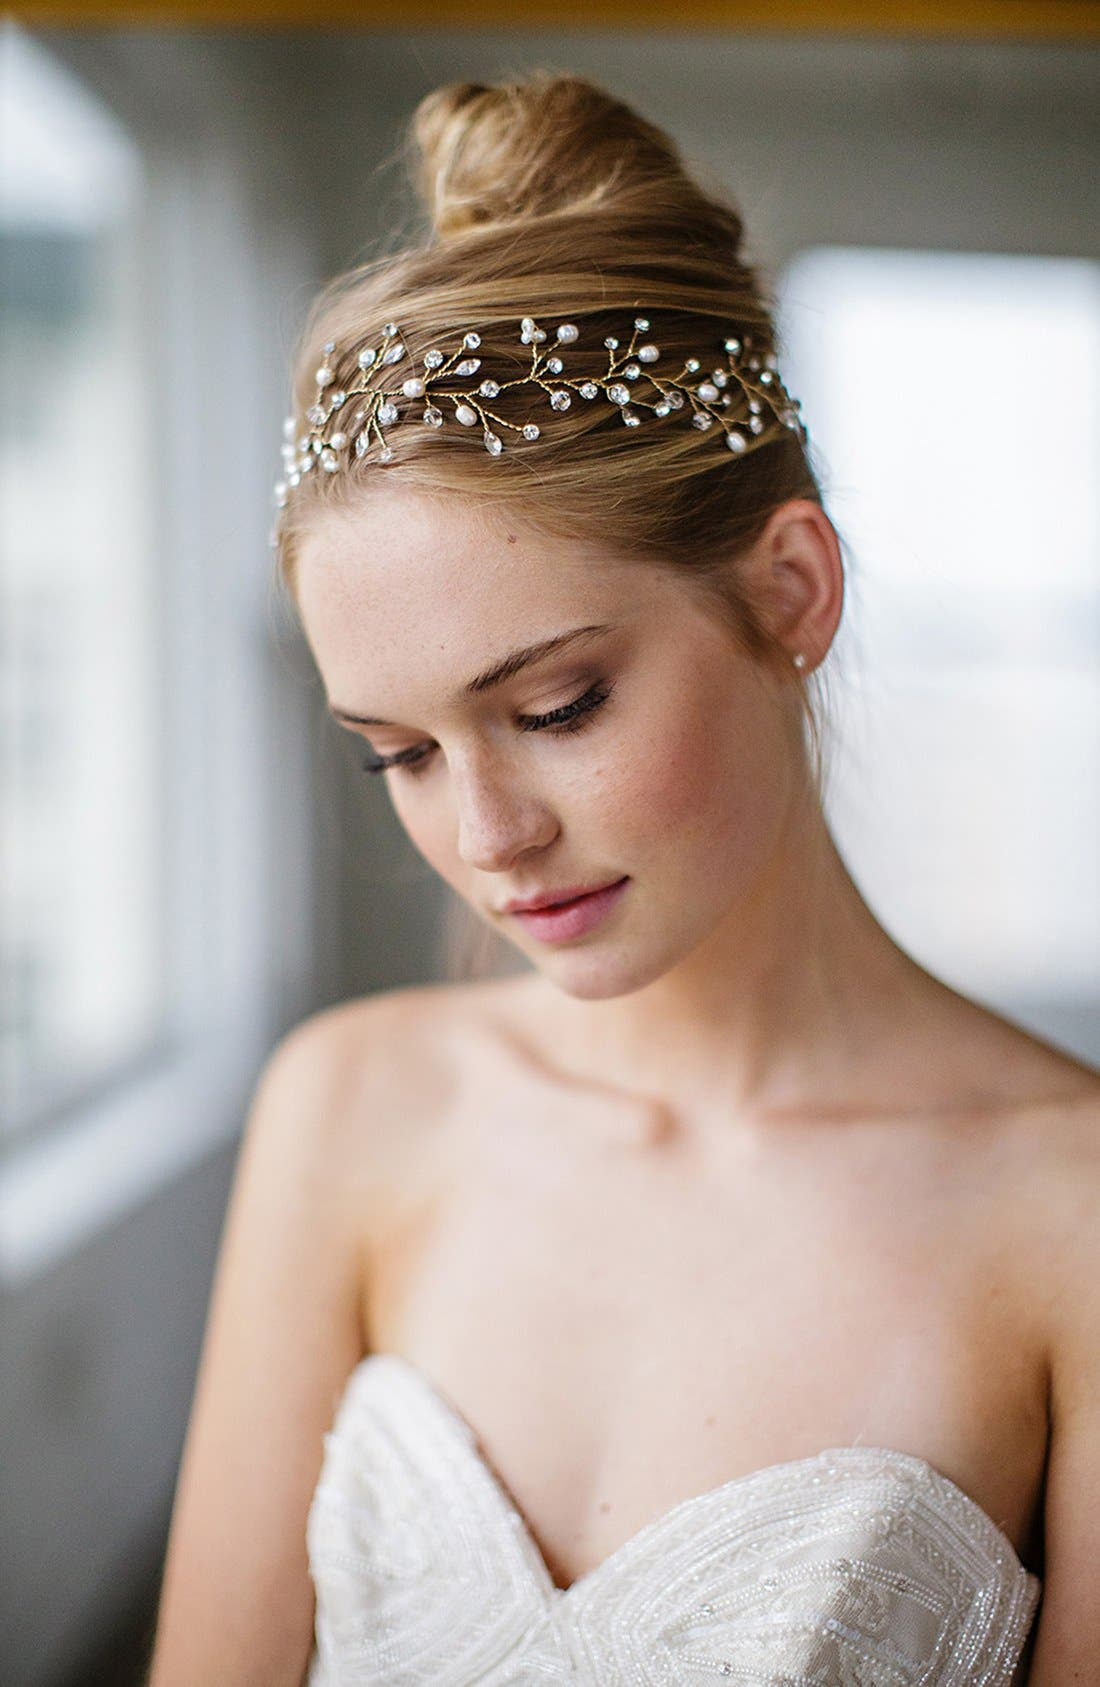 Main Image - Brides & Hairpins 'Vitalia' Pearl & Jeweled Head Band